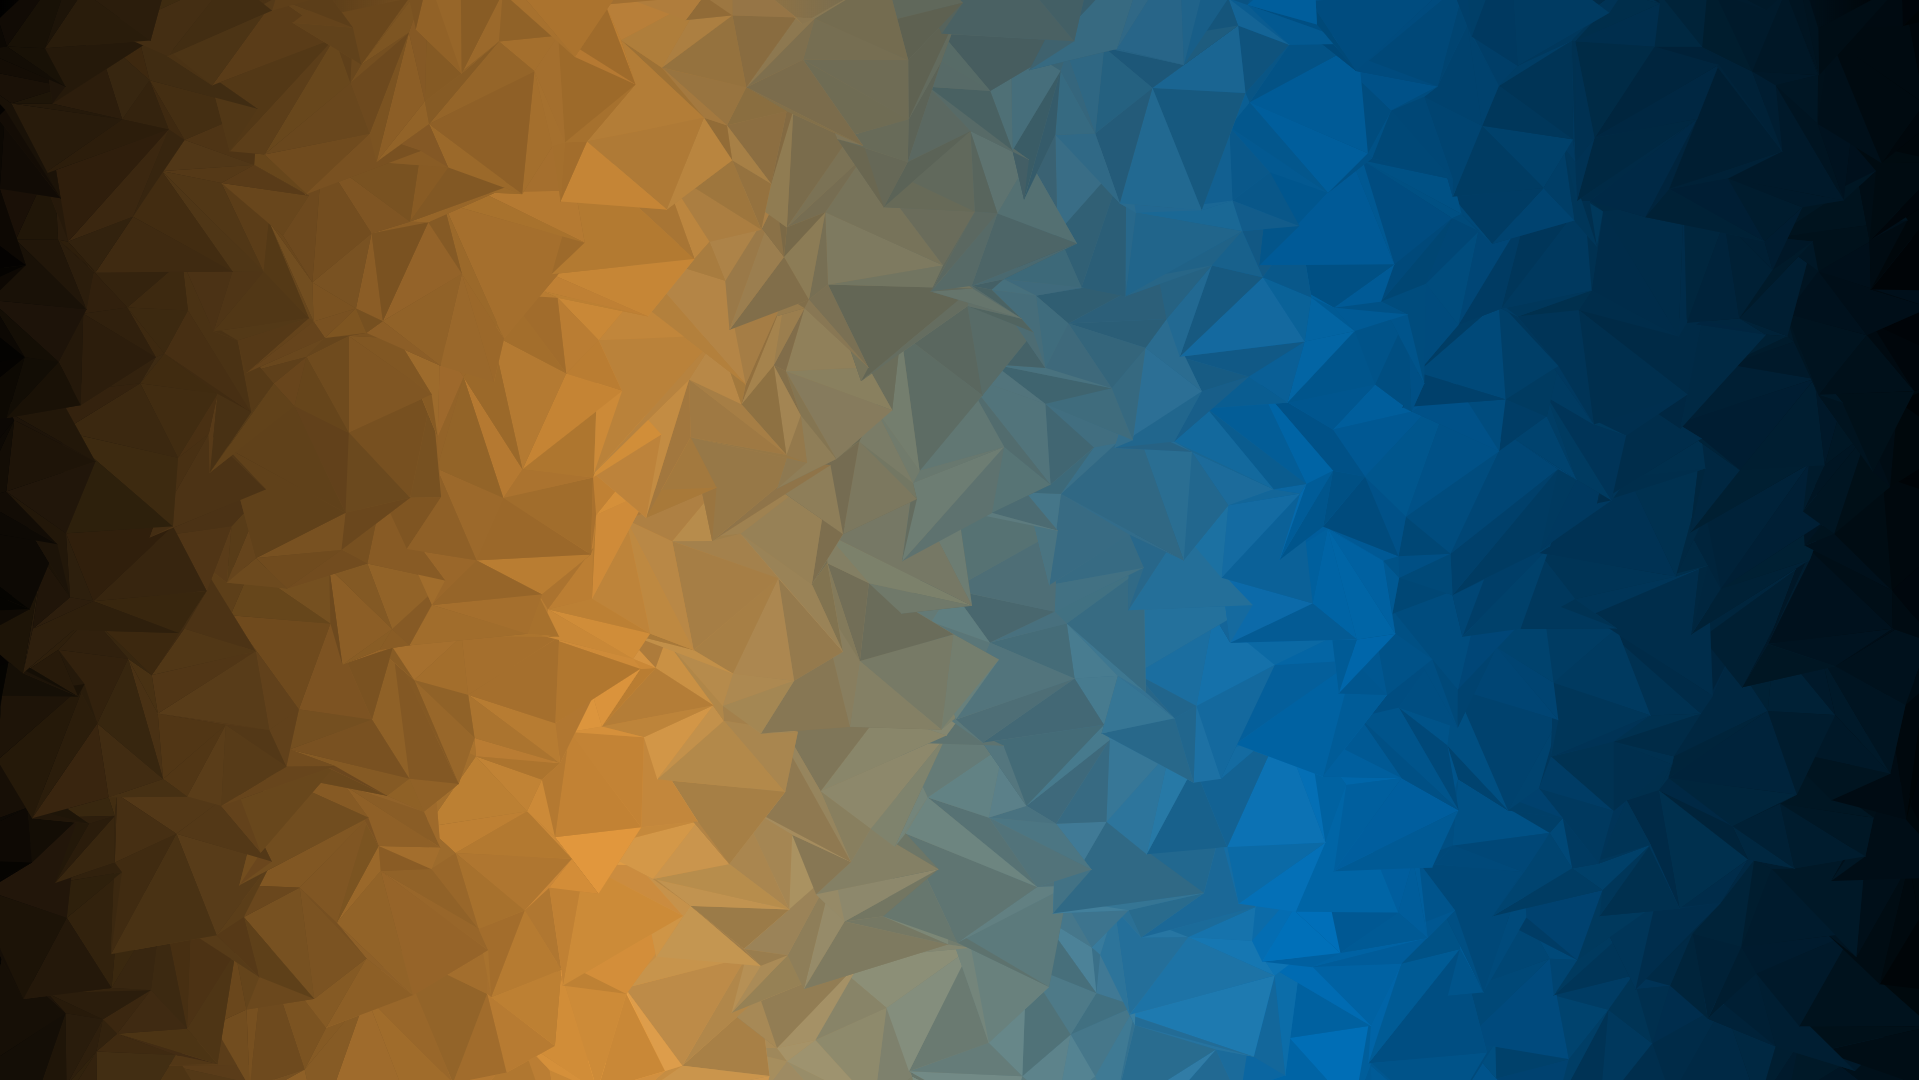 Abstract Teal And Orange Background